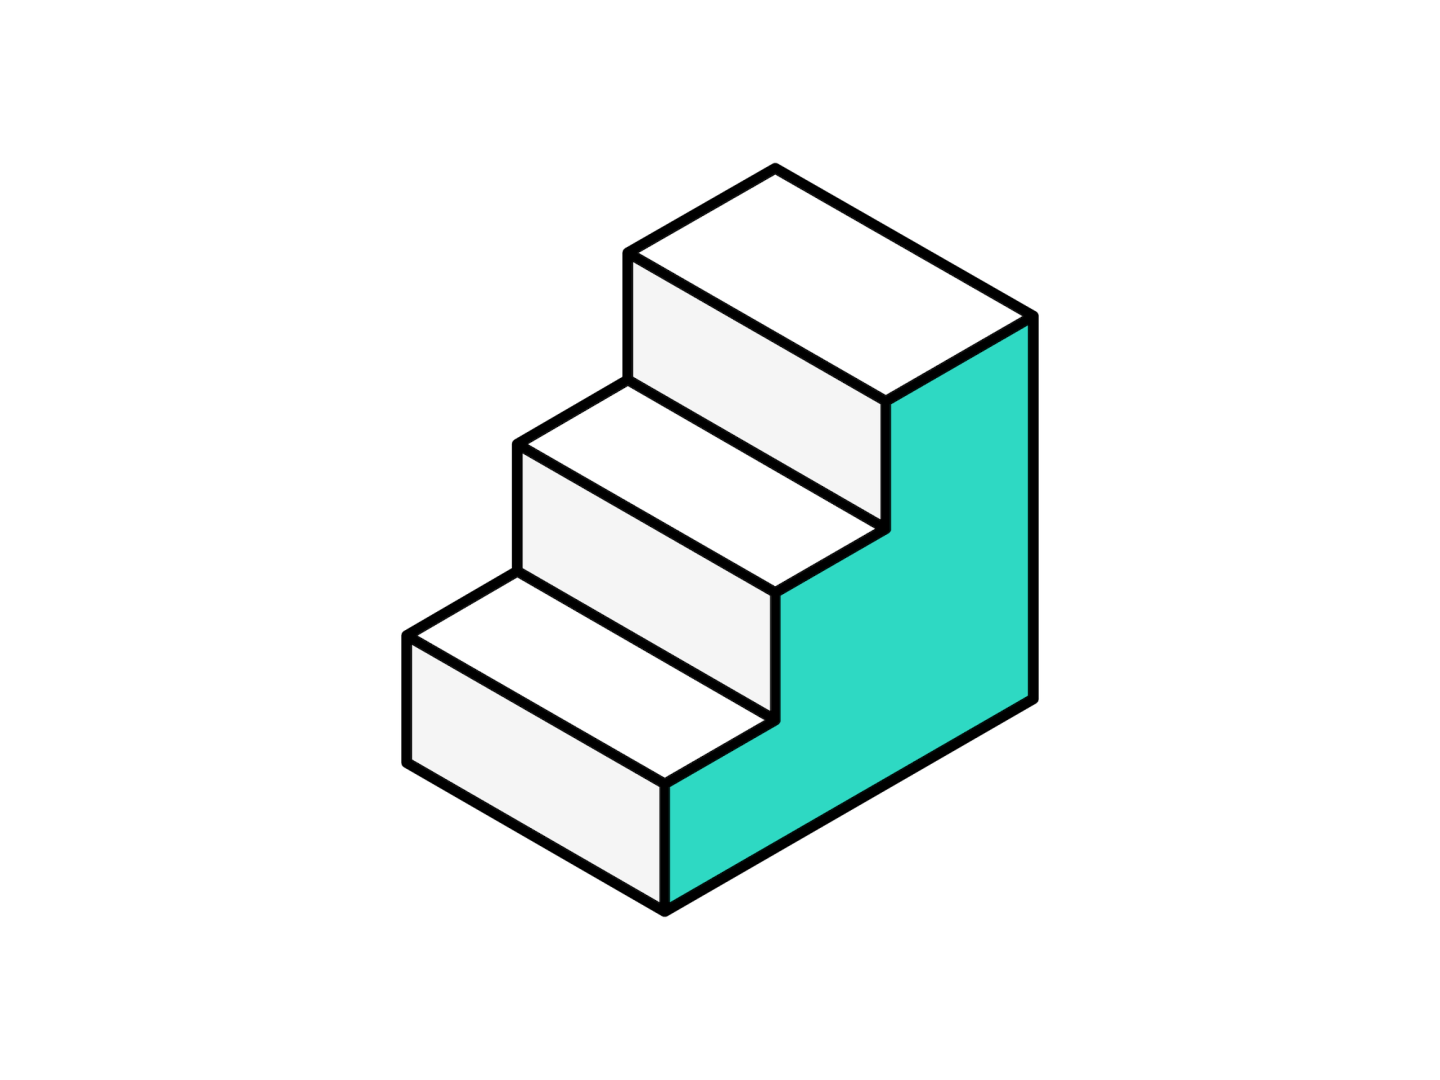 An isometric illustration of a set of stairs with 3 steps